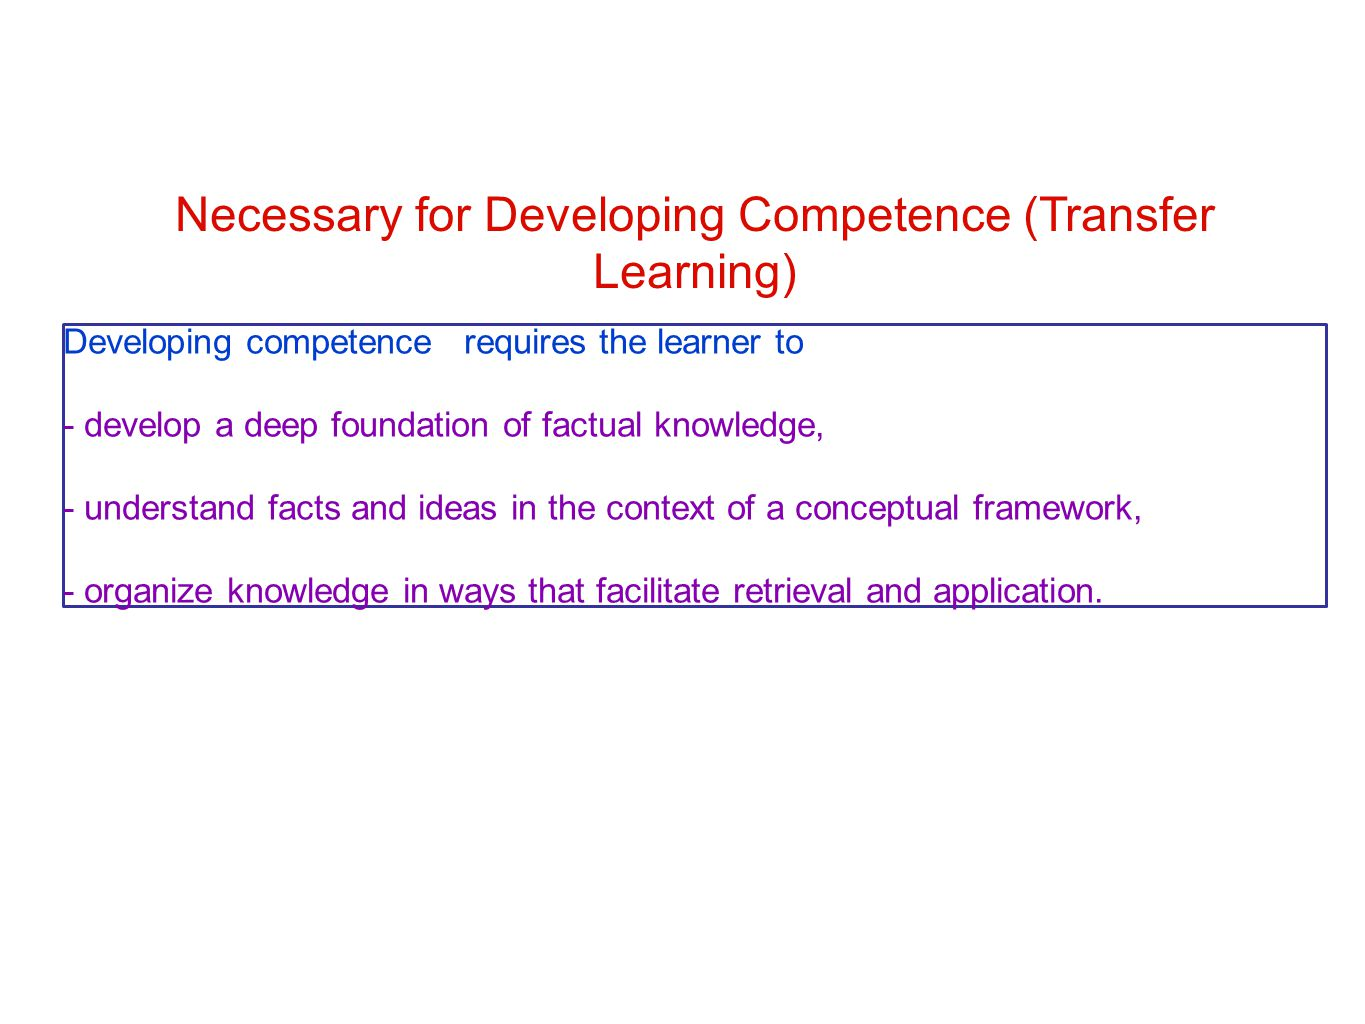 Developing competence requires the learner to - develop a deep foundation of factual knowledge, - understand facts and ideas in the context of a conceptual framework, - organize knowledge in ways that facilitate retrieval and application.